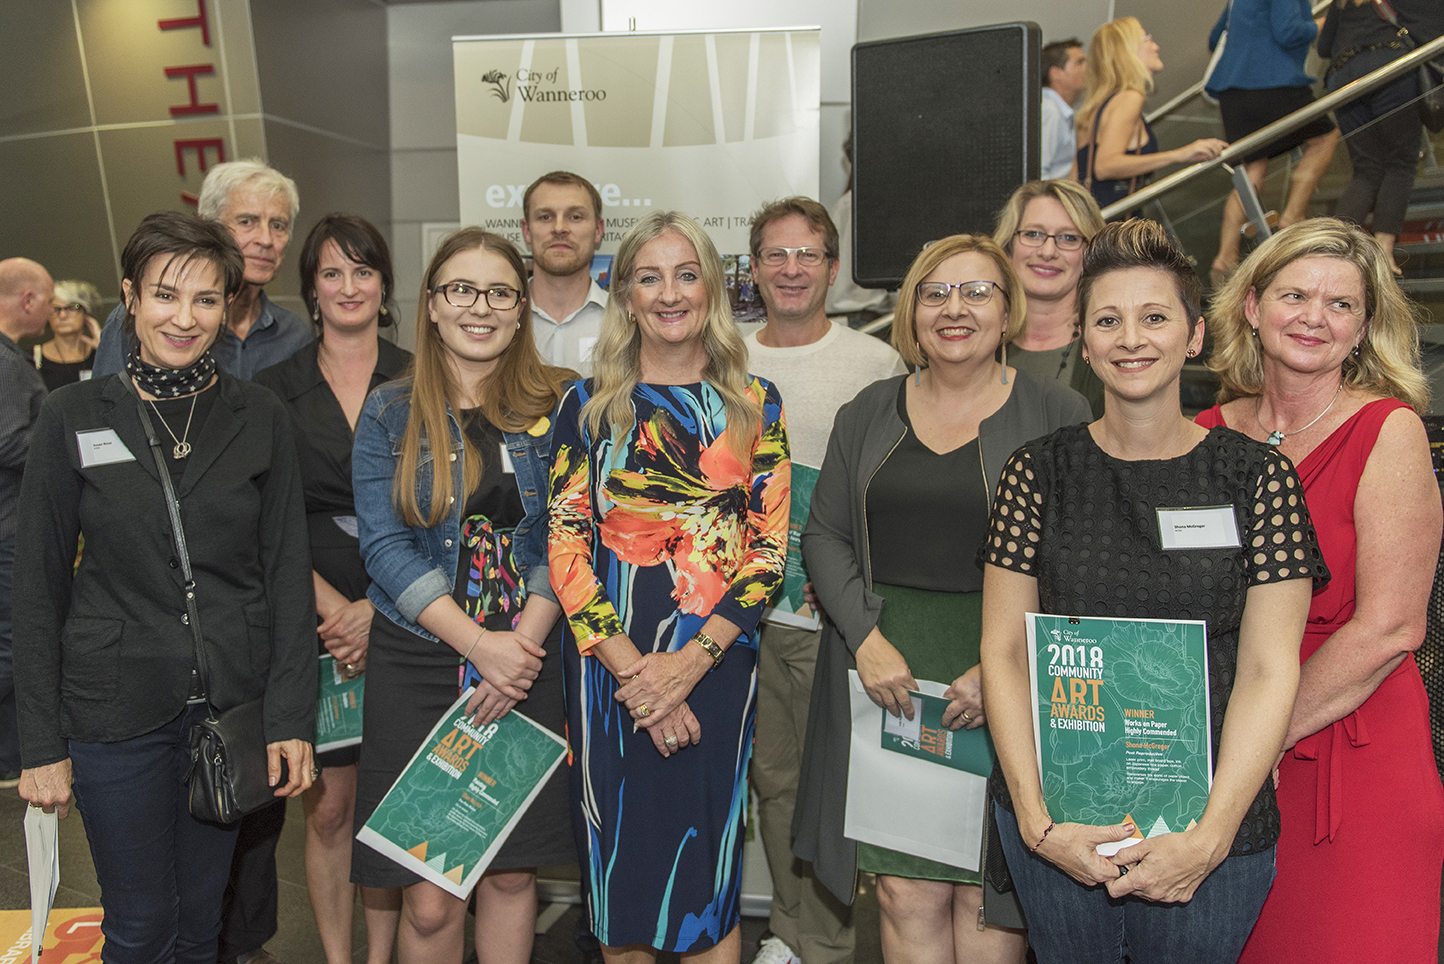 An image of City of Wanneroo Mayor Tracey Roberts pictured with the winners from the 2018 Community Art Awards and Exhibition at last year's event.